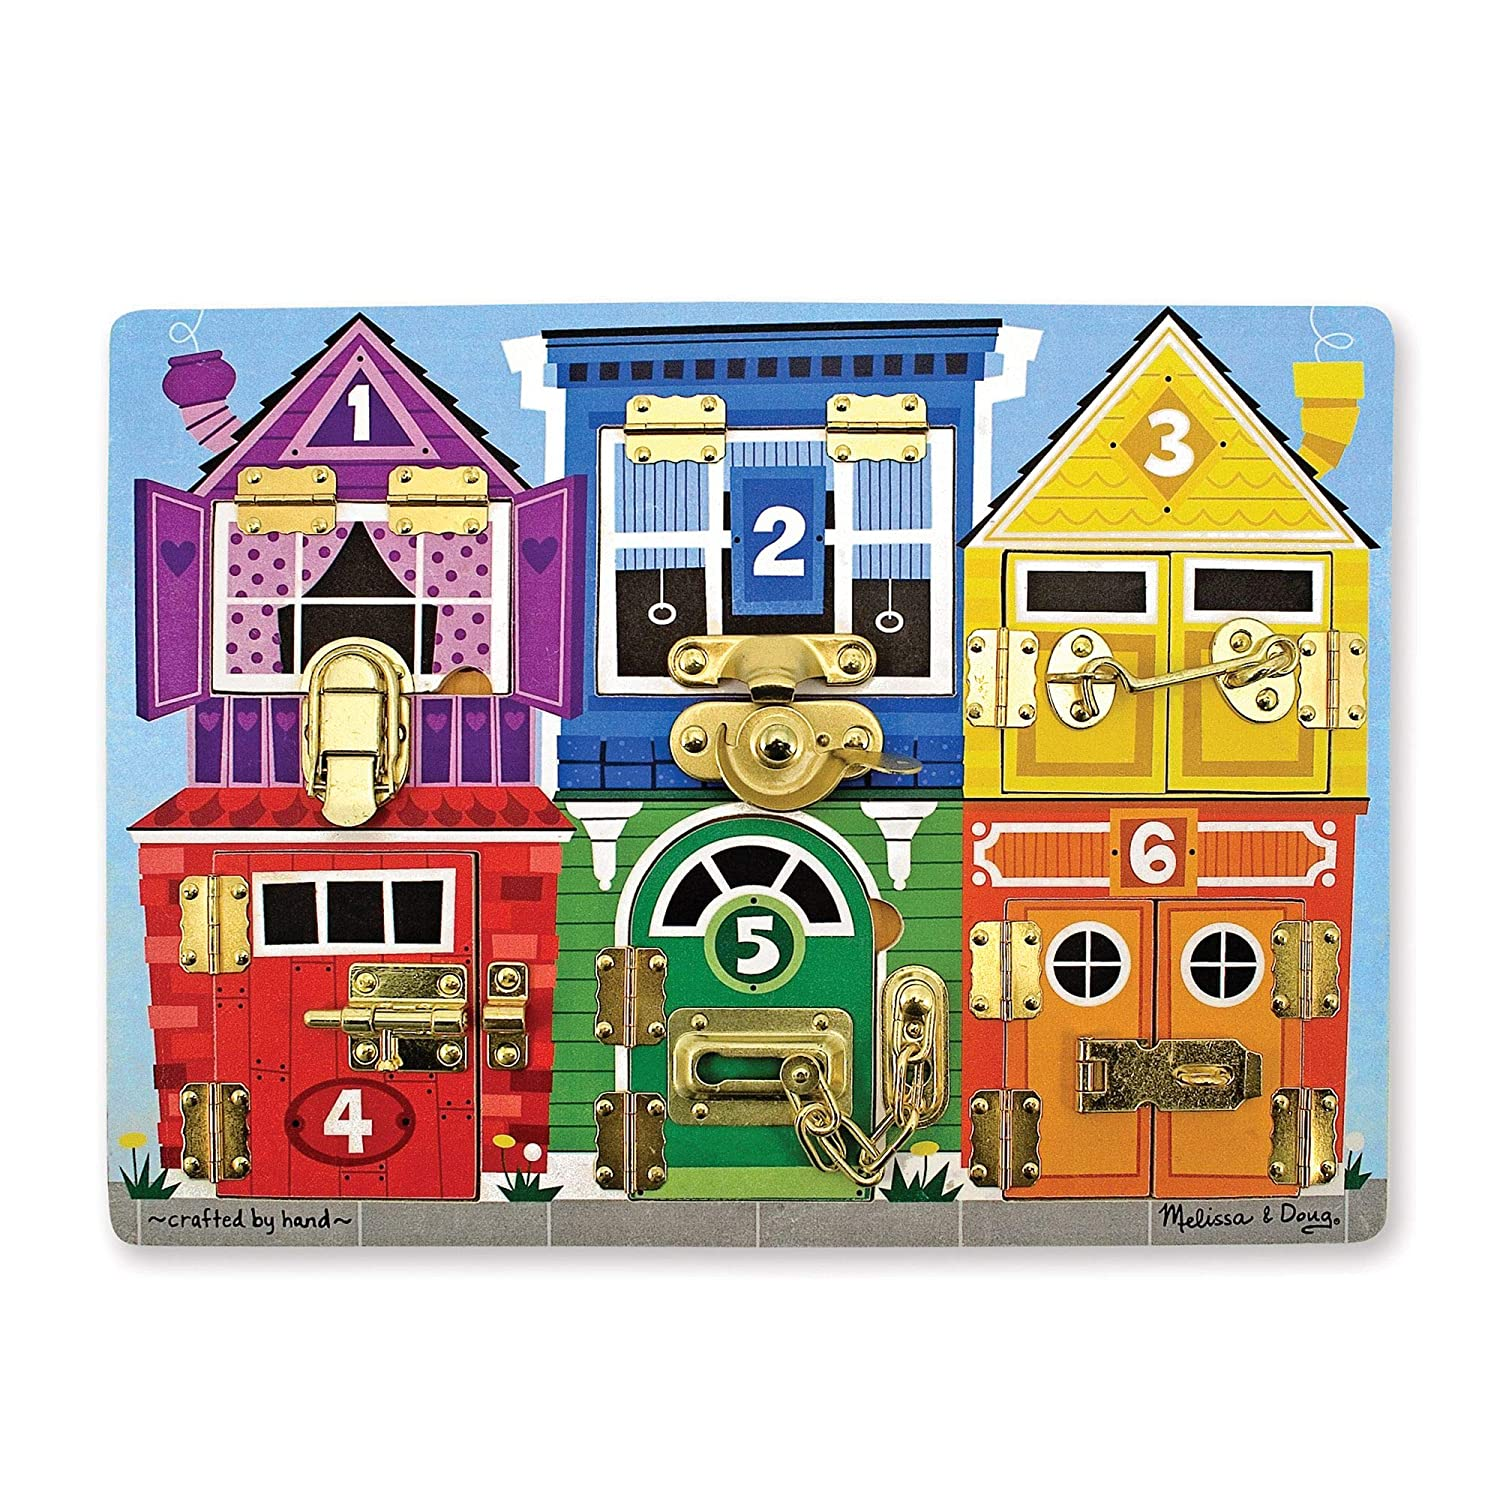 Melissa Doug Wooden Latches Board Developmental Toy Helps Develop Fine Motor Skills Smooth Sanded Wood 15.5 H x 11.5 W x 1.25 L